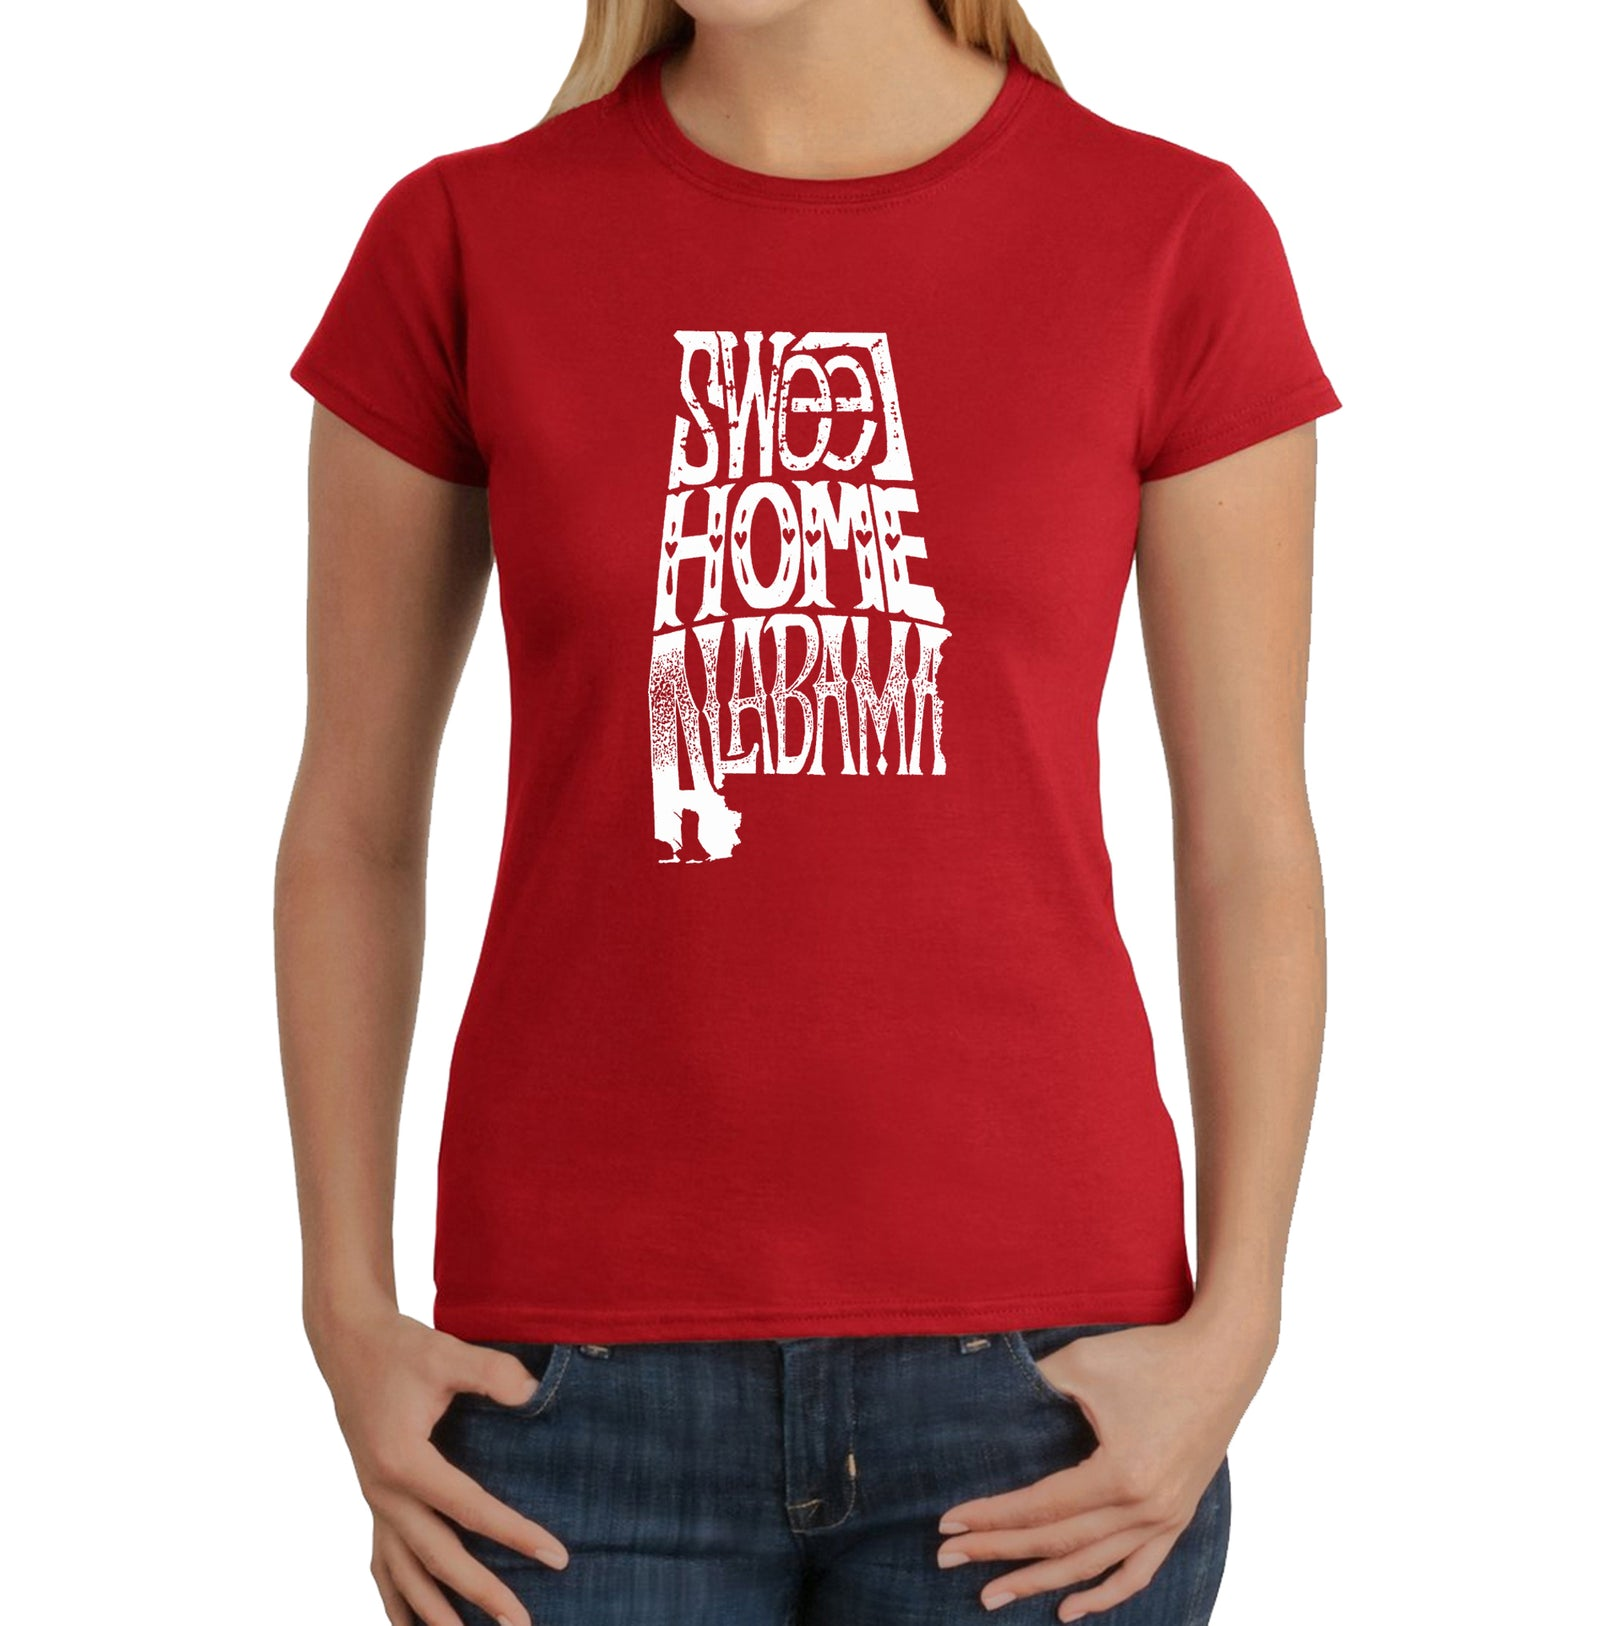 Women's Word Art T-Shirt - Sweet Home Alabama